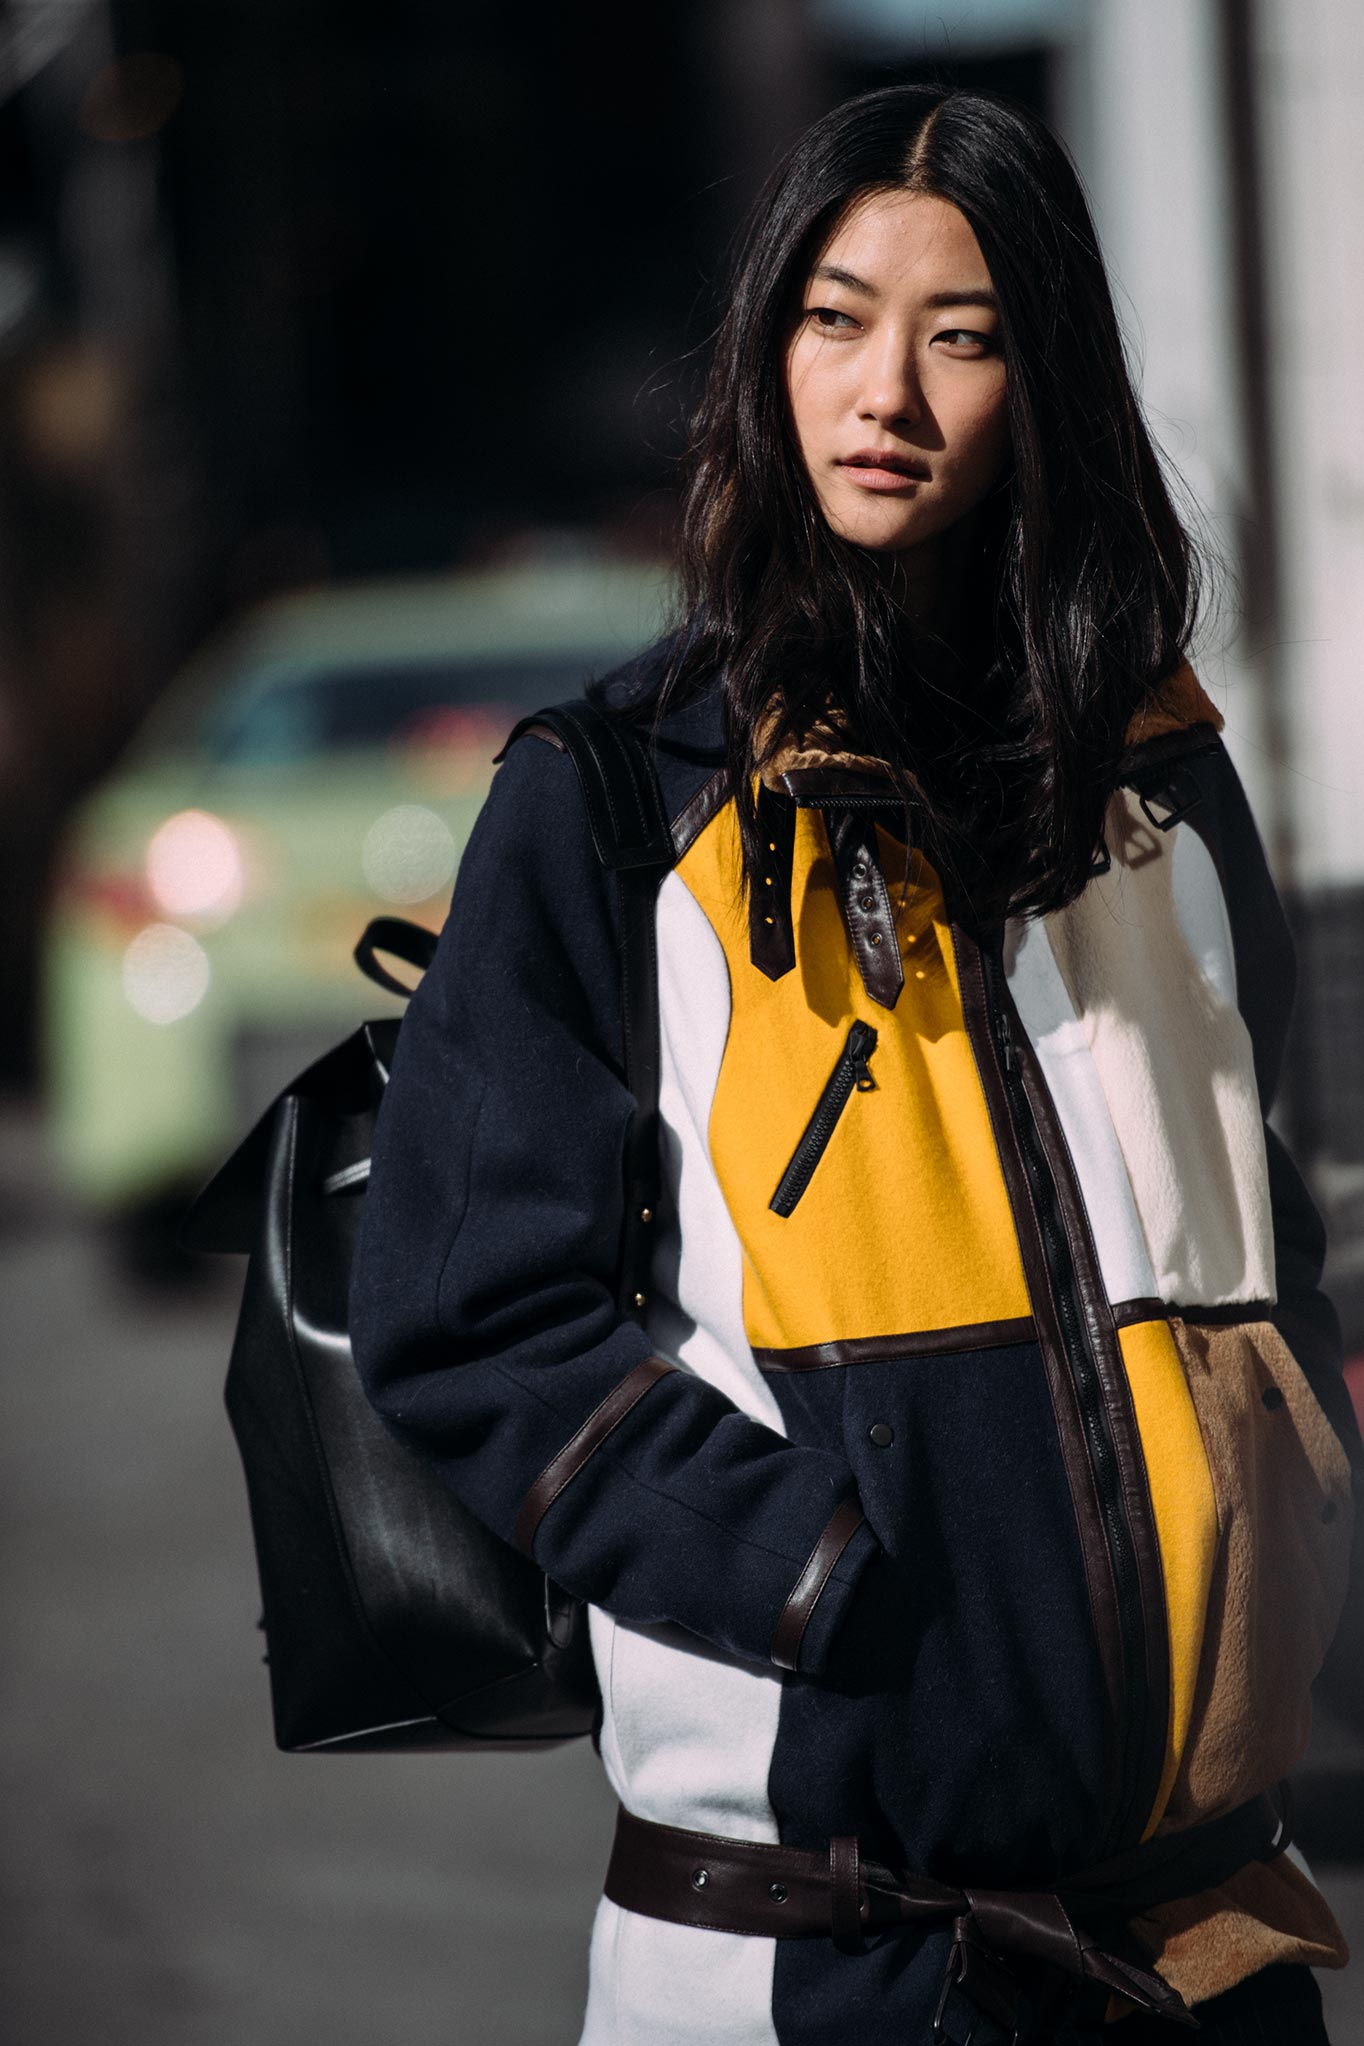 Ji Hye Park at New York Fashion Week Fall/Winter 2015